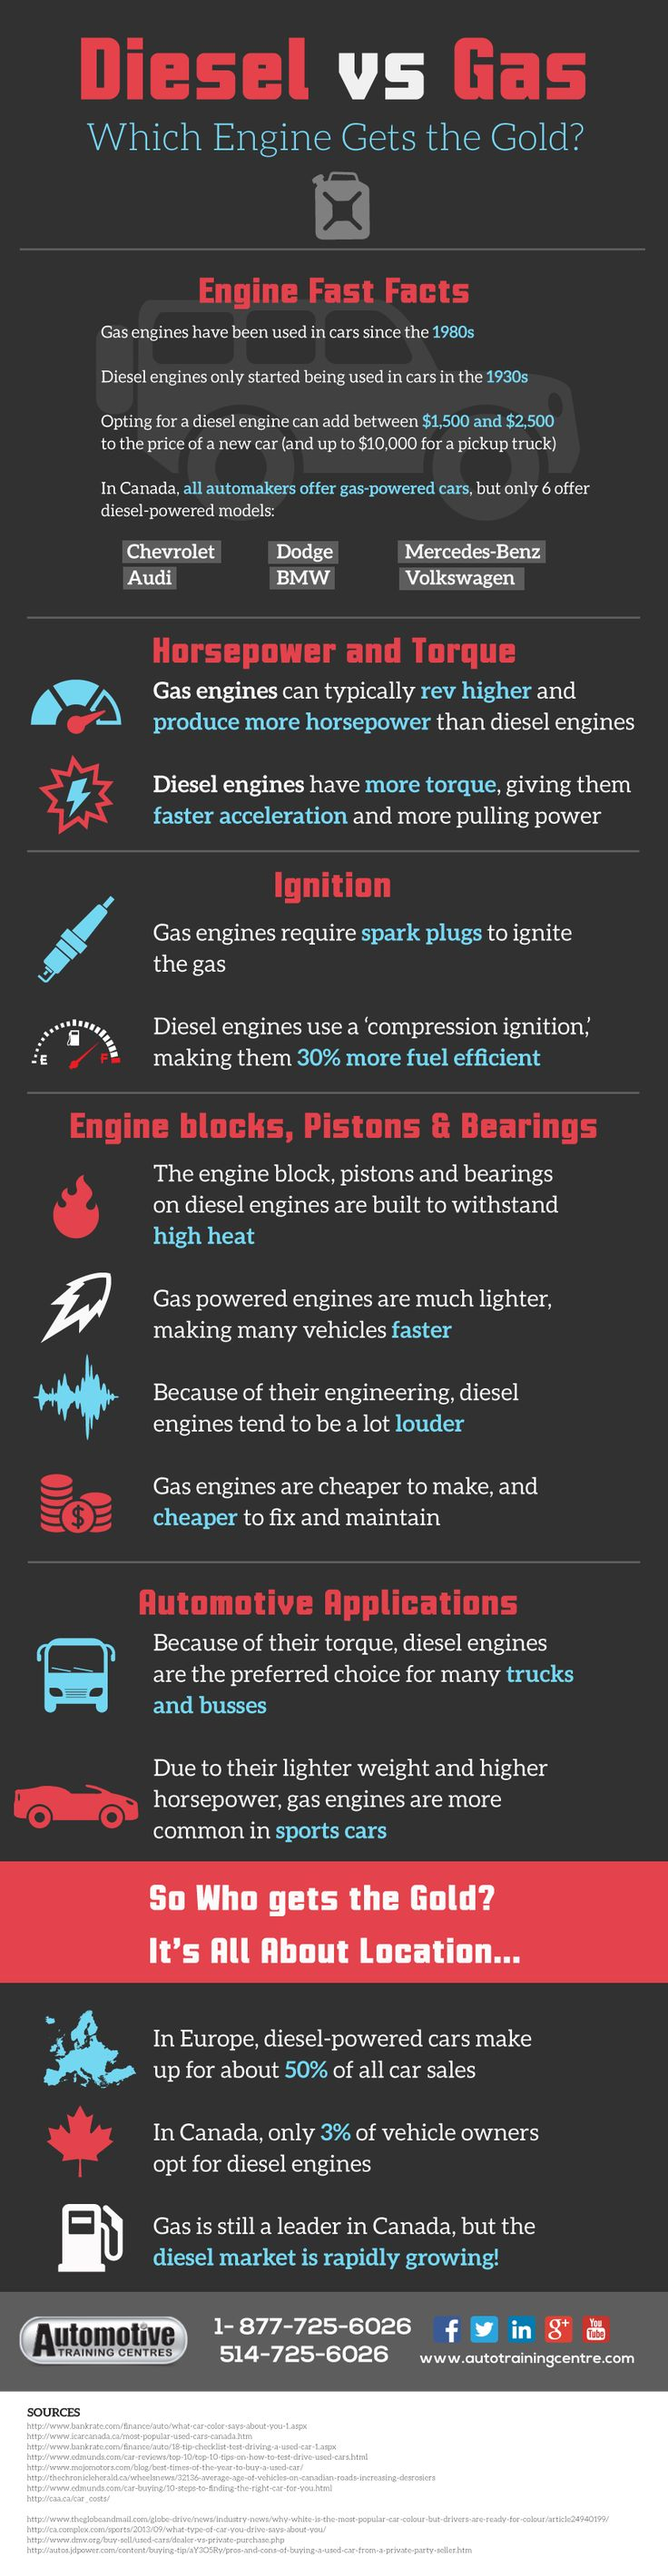 Mechanic colleges teach students all about the types of engines they'll be working on once they graduate and start their careers.